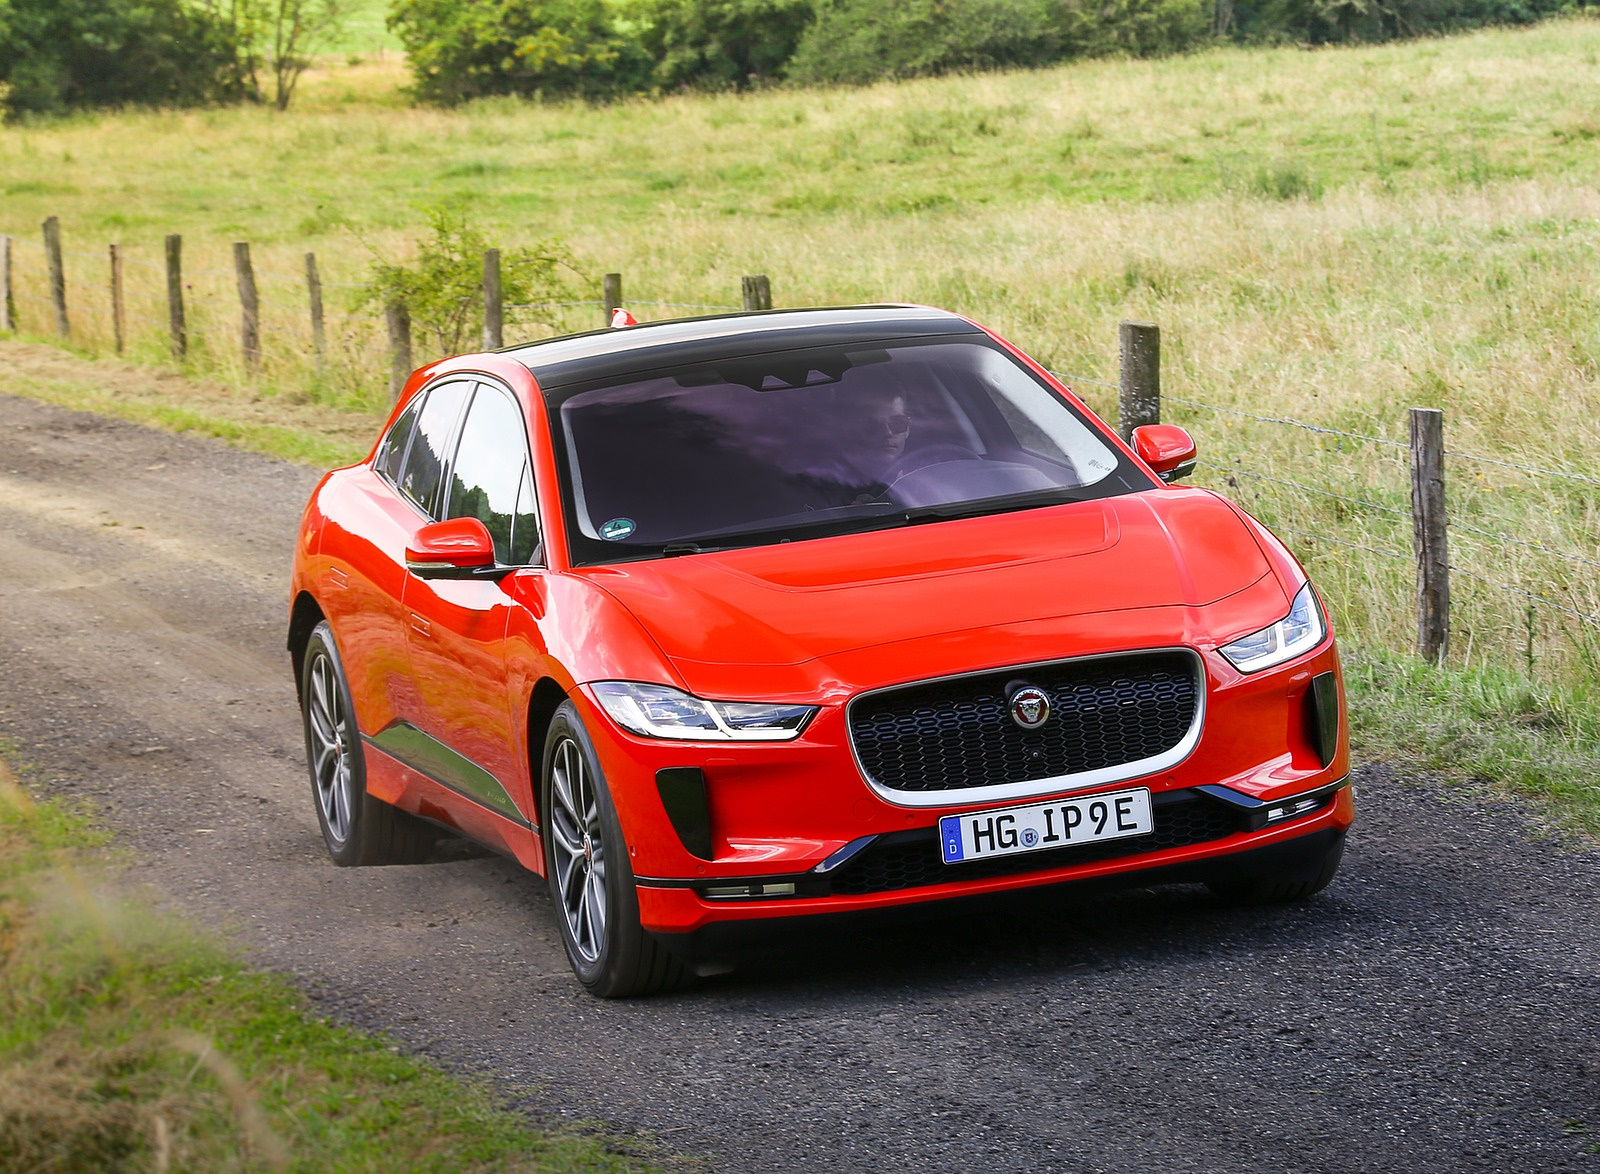 2019 Jaguar I-PACE EV400 AWD HSE First Edition (Color: Photon Red) Front Wallpapers #38 of 192